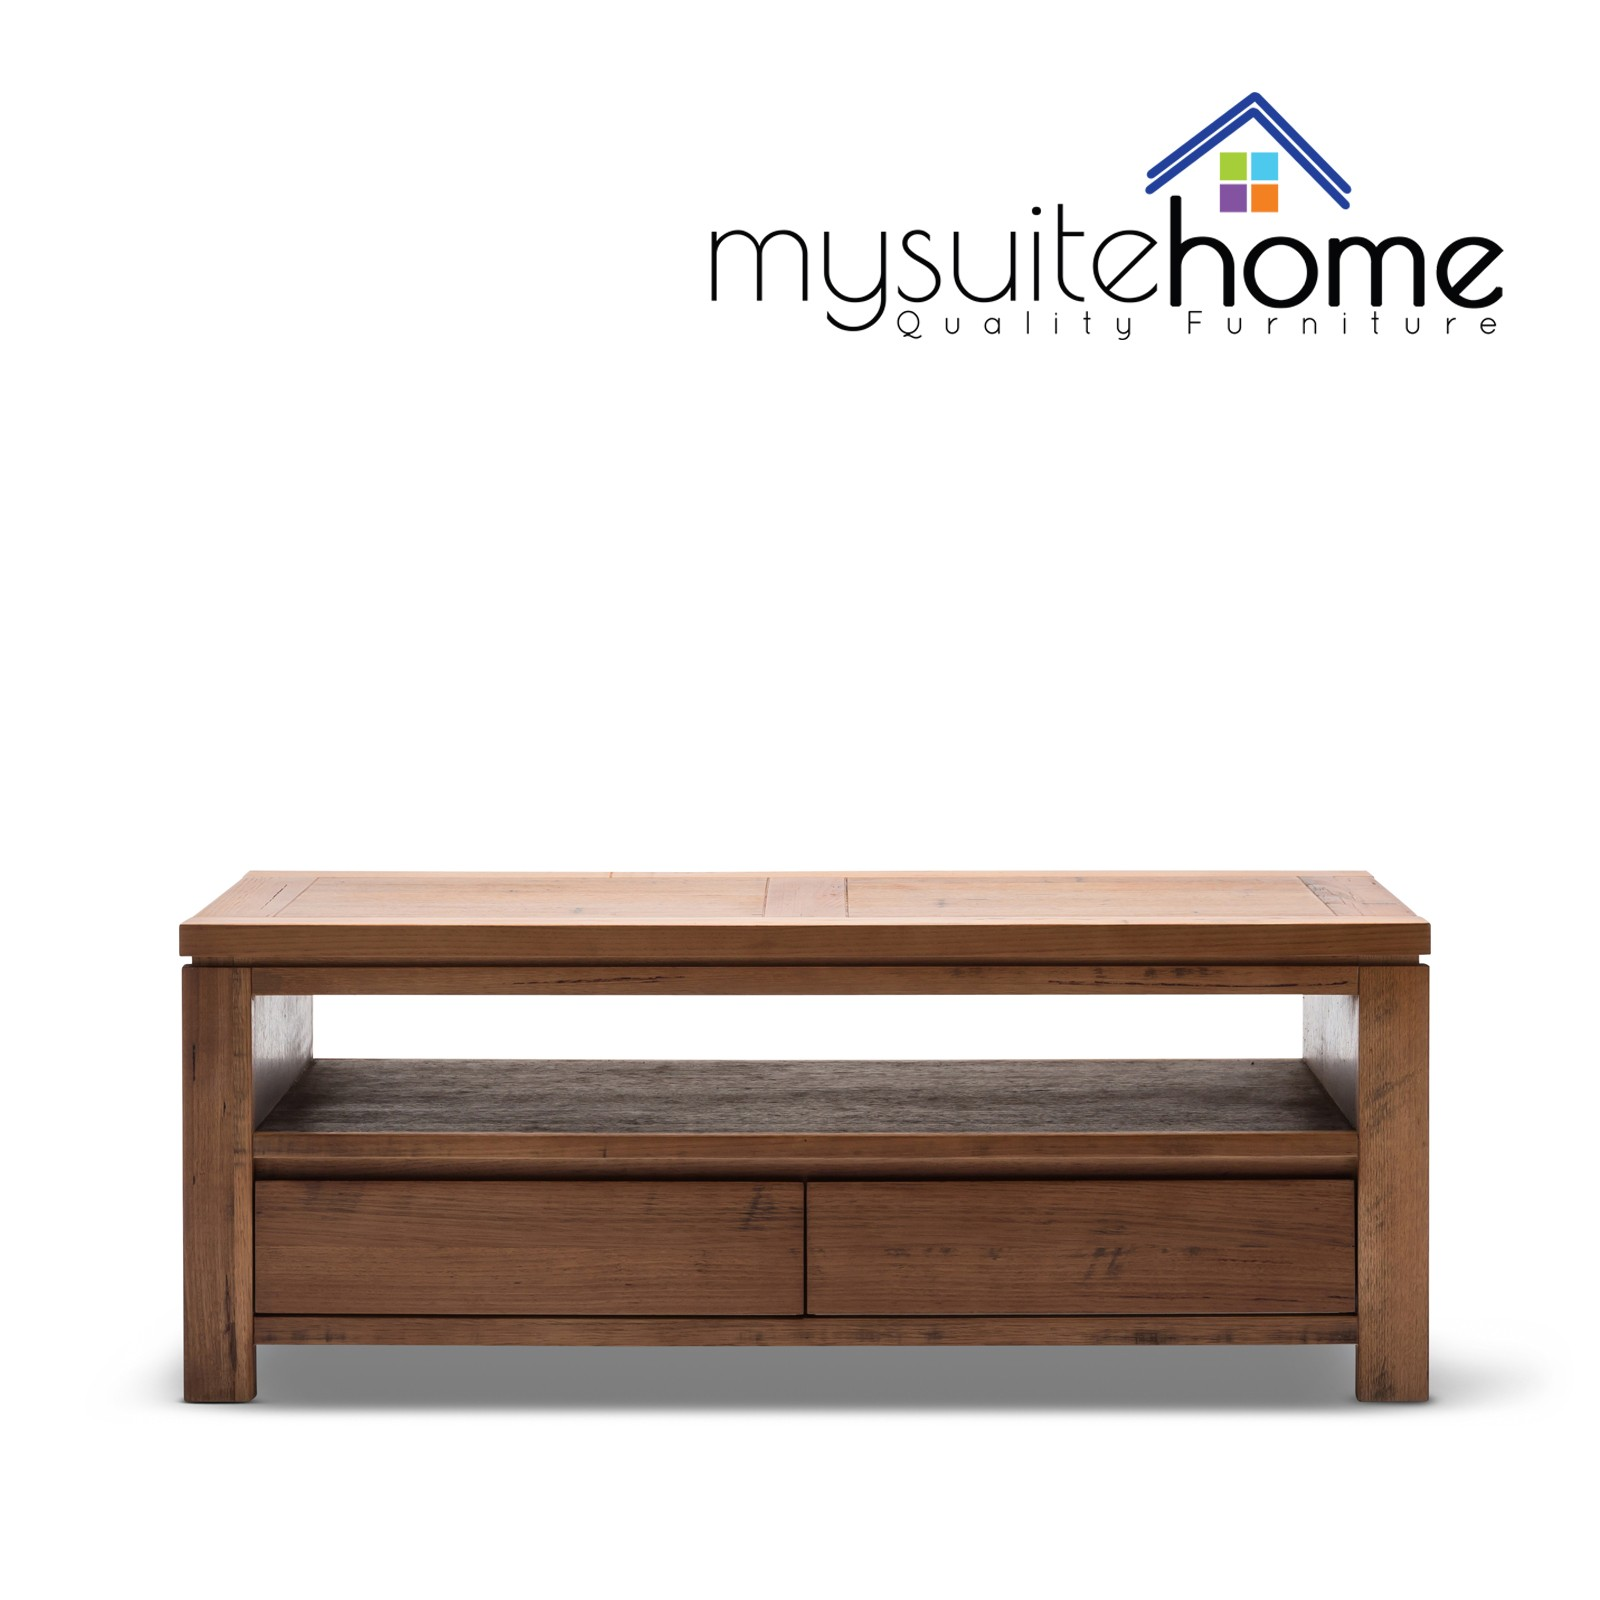 Packer Brand New Solid Tasmanian Oak Coffee Table with Storage Drawers and Shelf